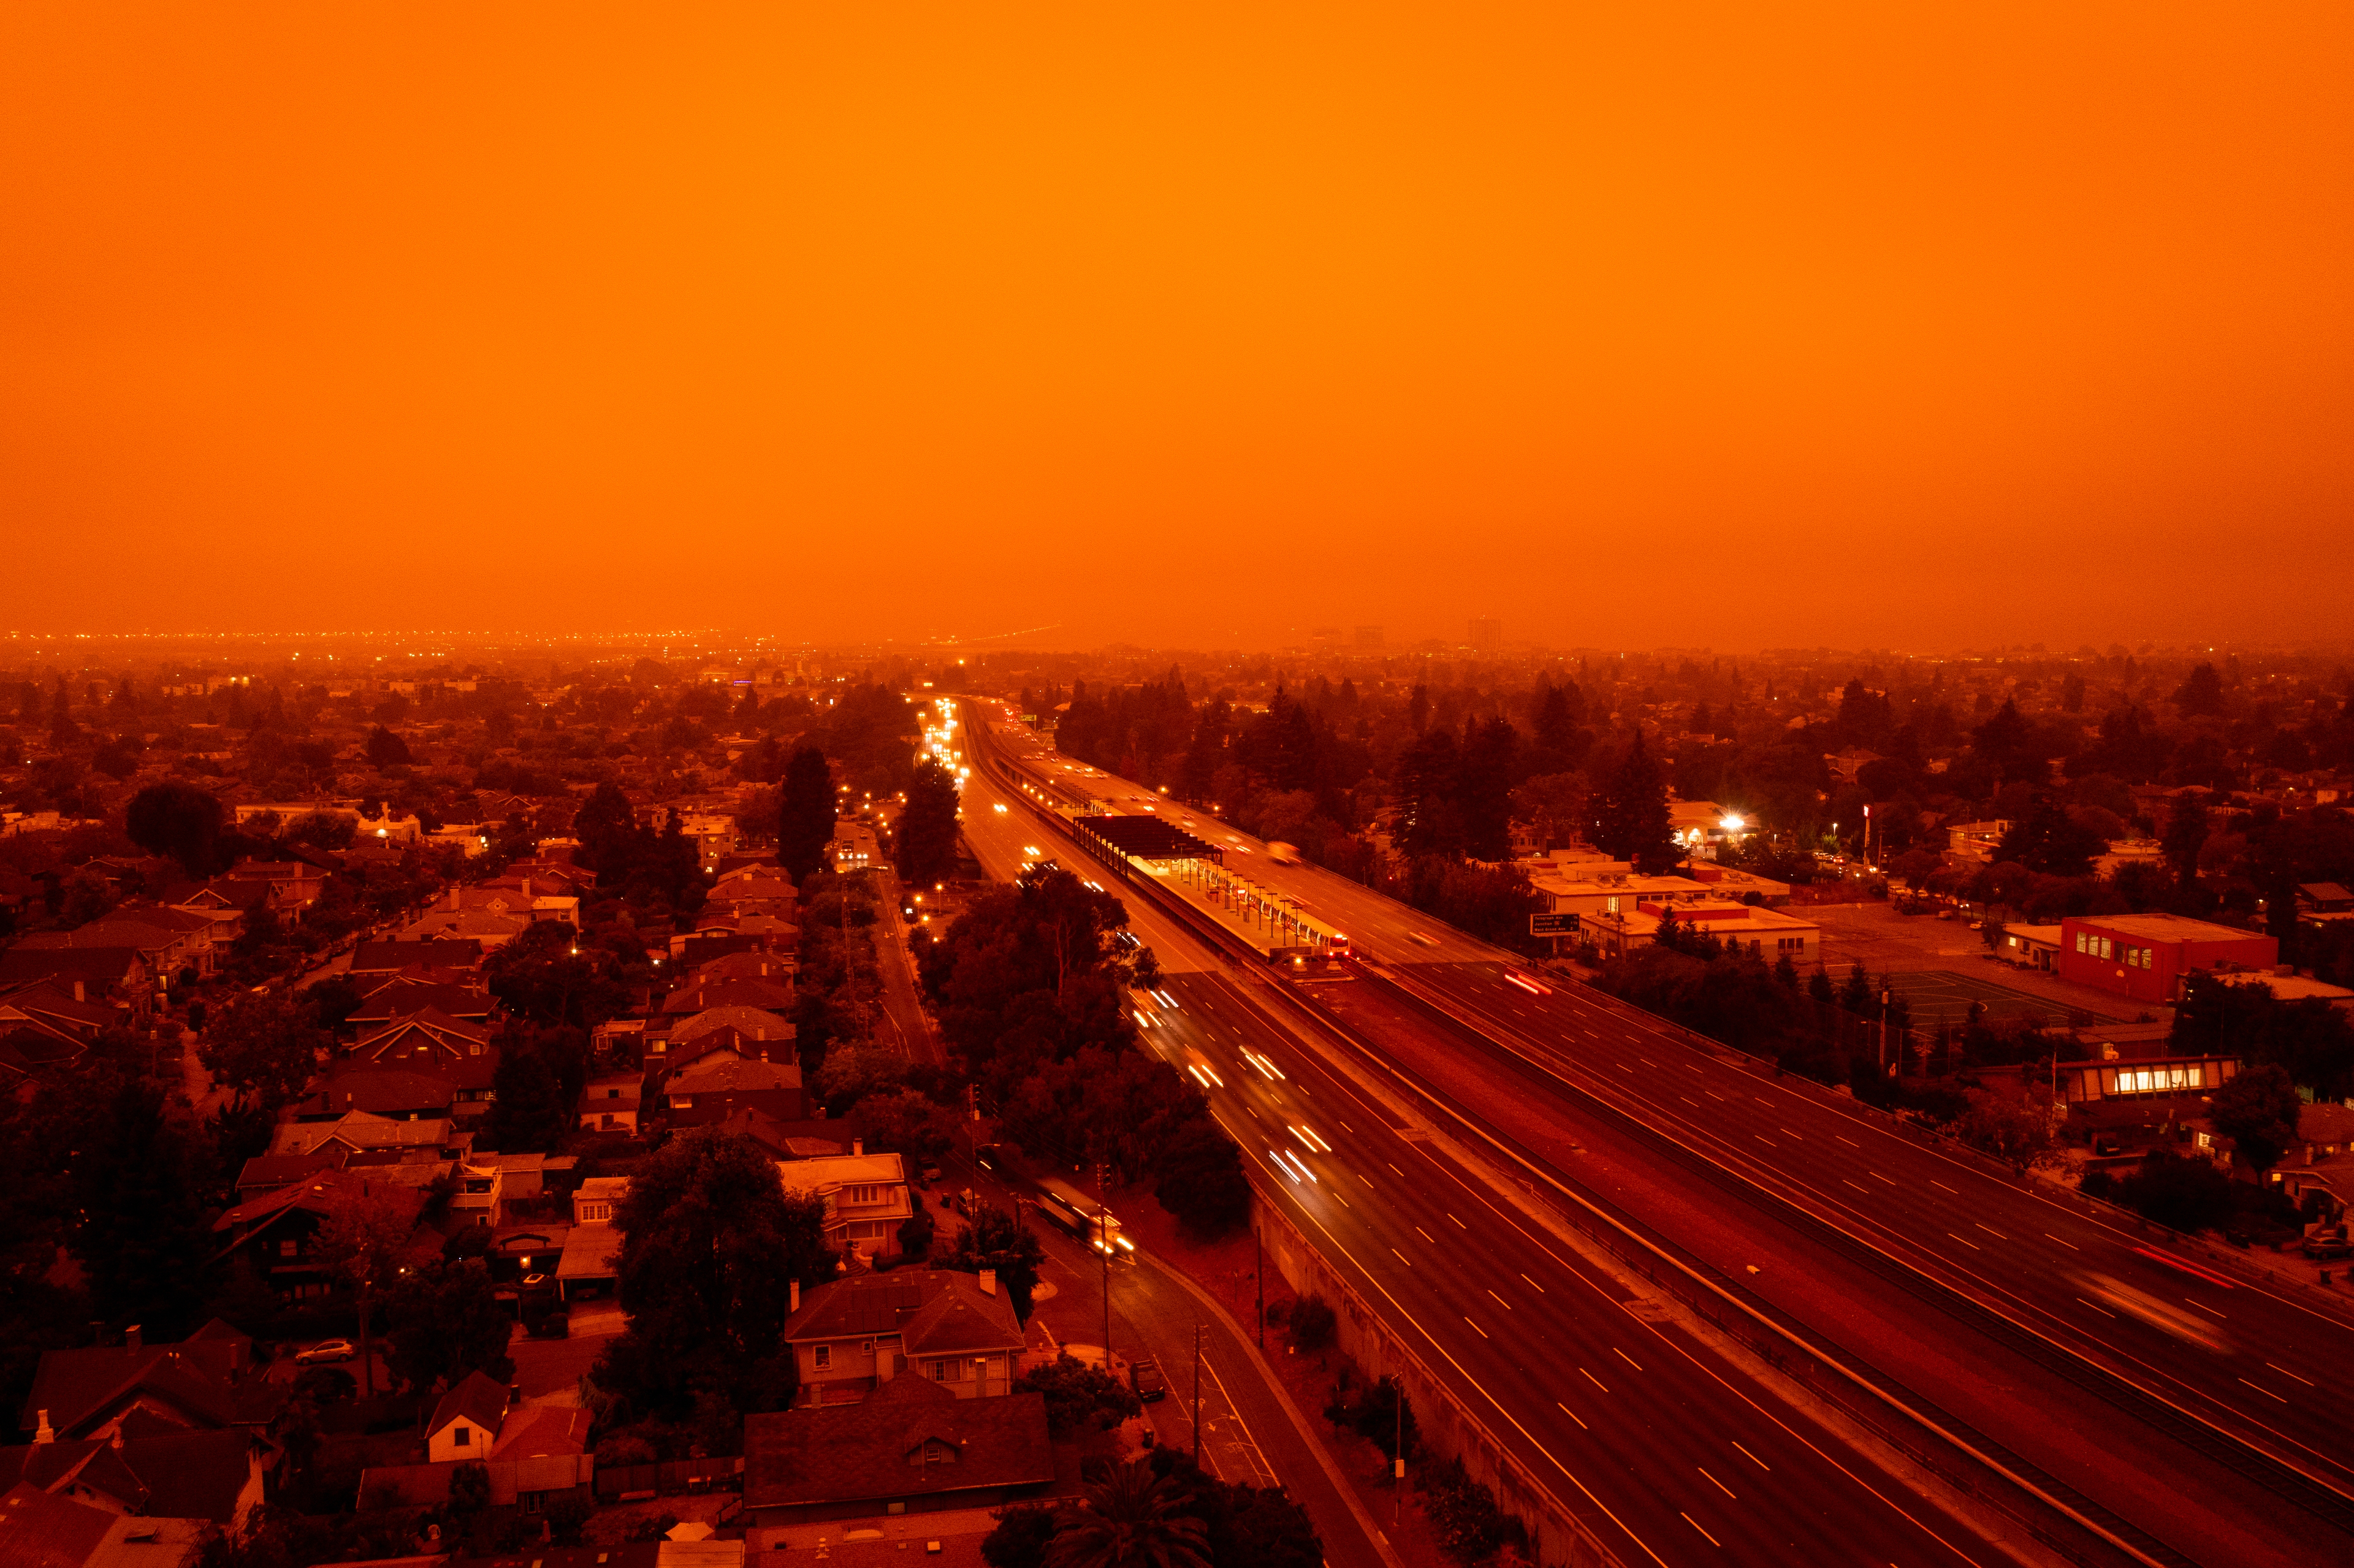 Marginalised communities bear the brunt of climate crisis in USA: New report